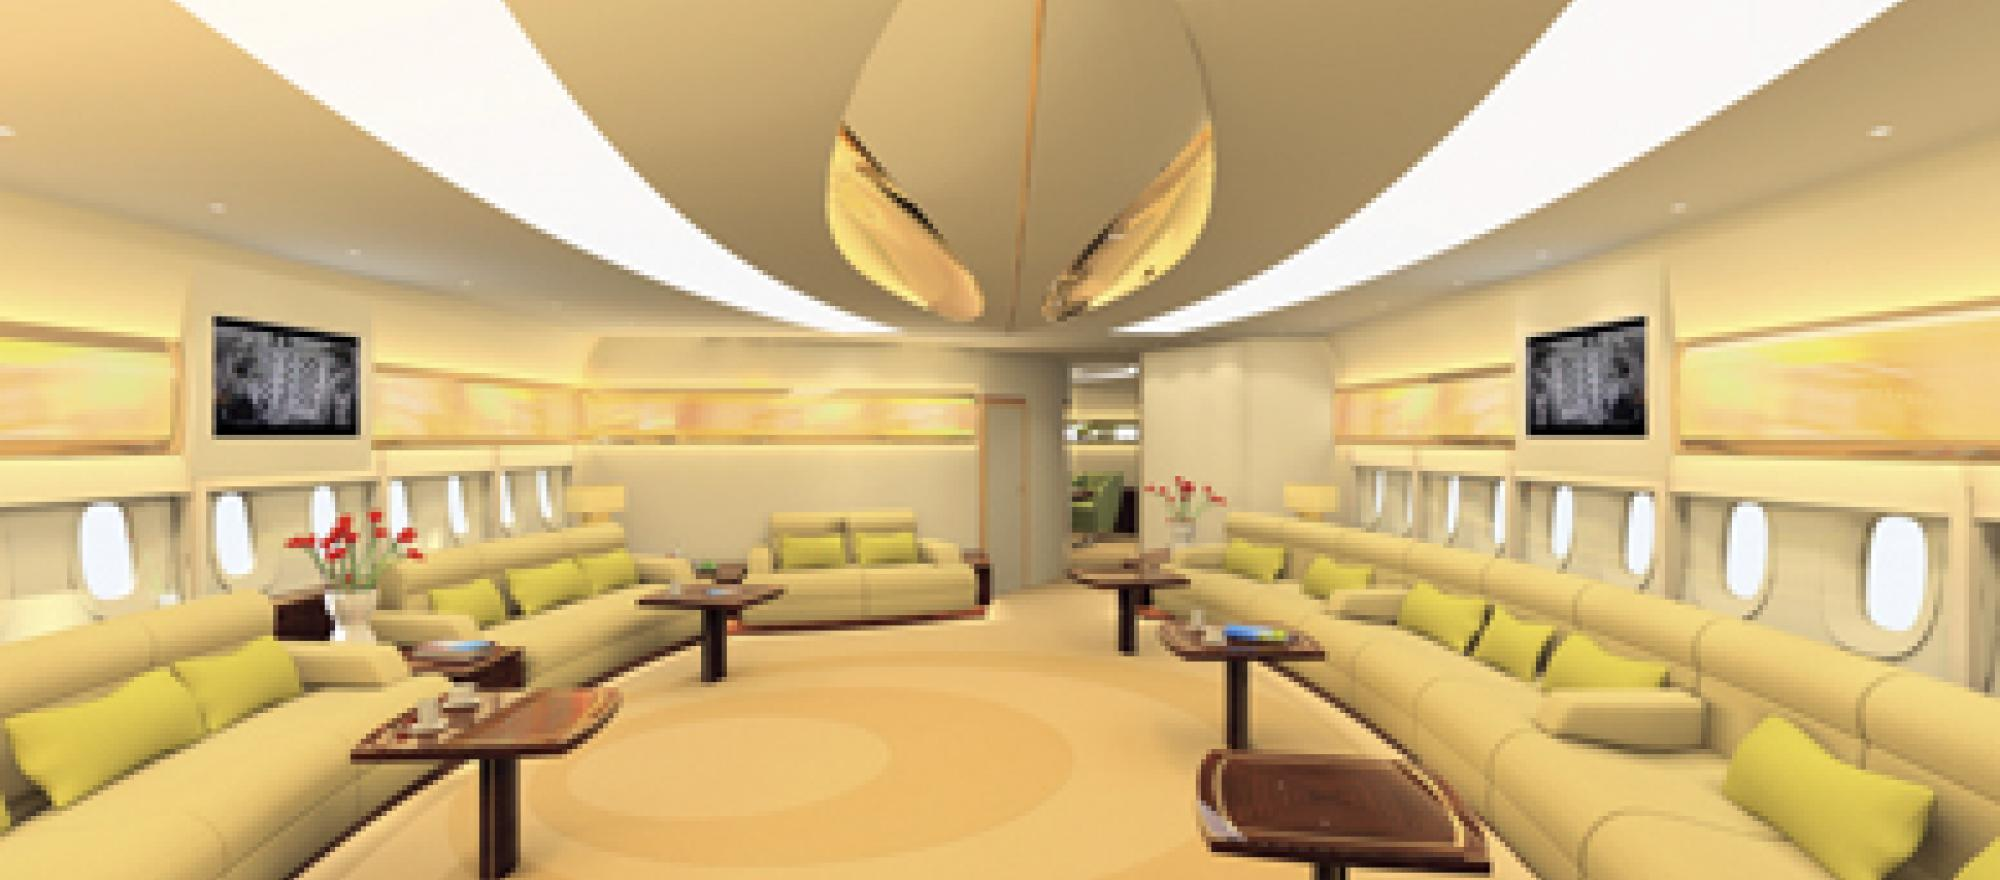 You won't confuse the prince's airbus a380 cabin with airline coach class. It